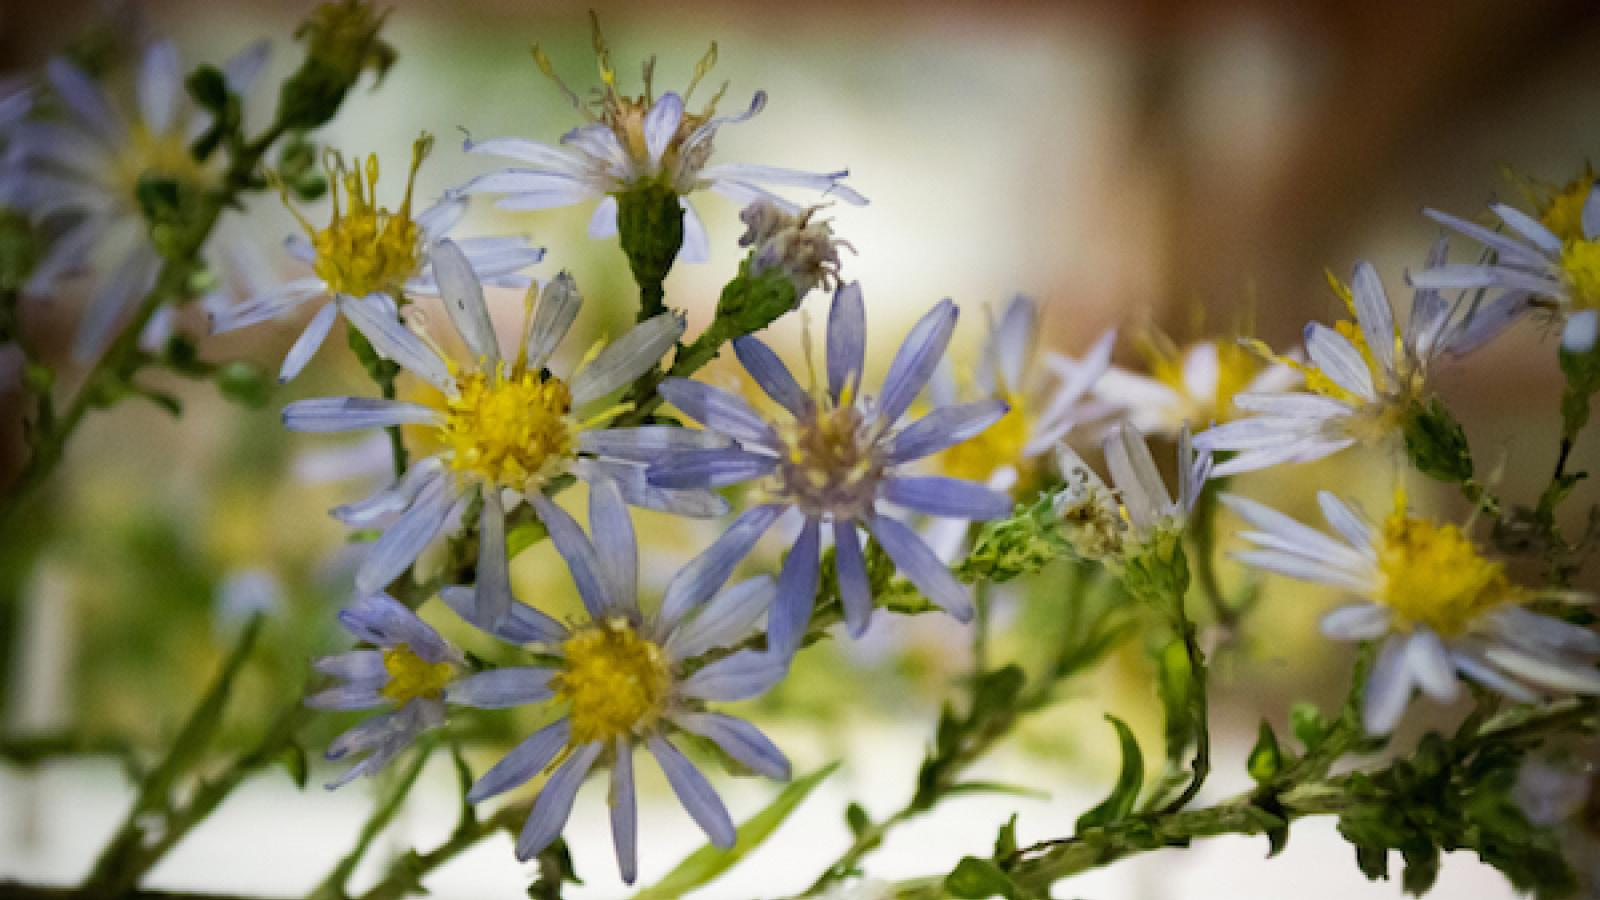 close-up of glass model of aster flowers at Harvard Museum of Natural History